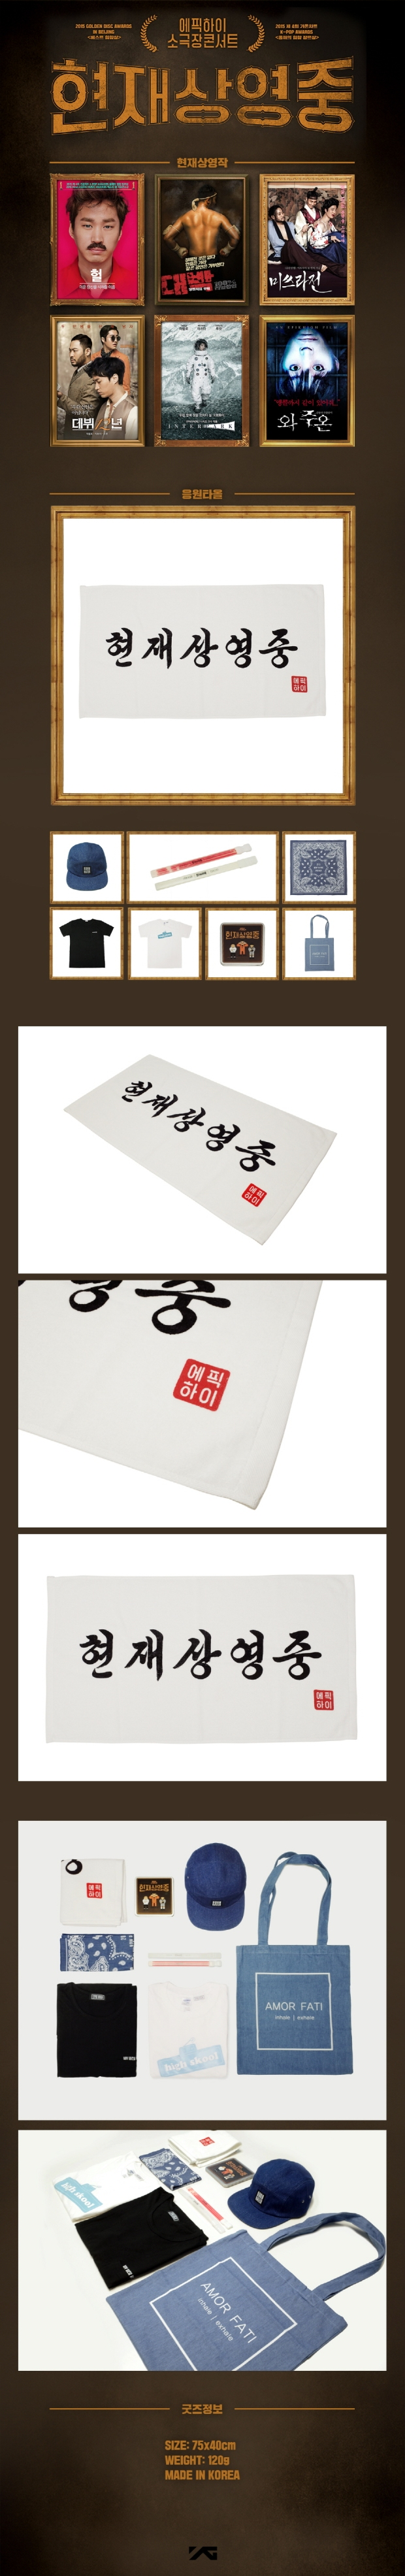 02_epikhigh_towel_01